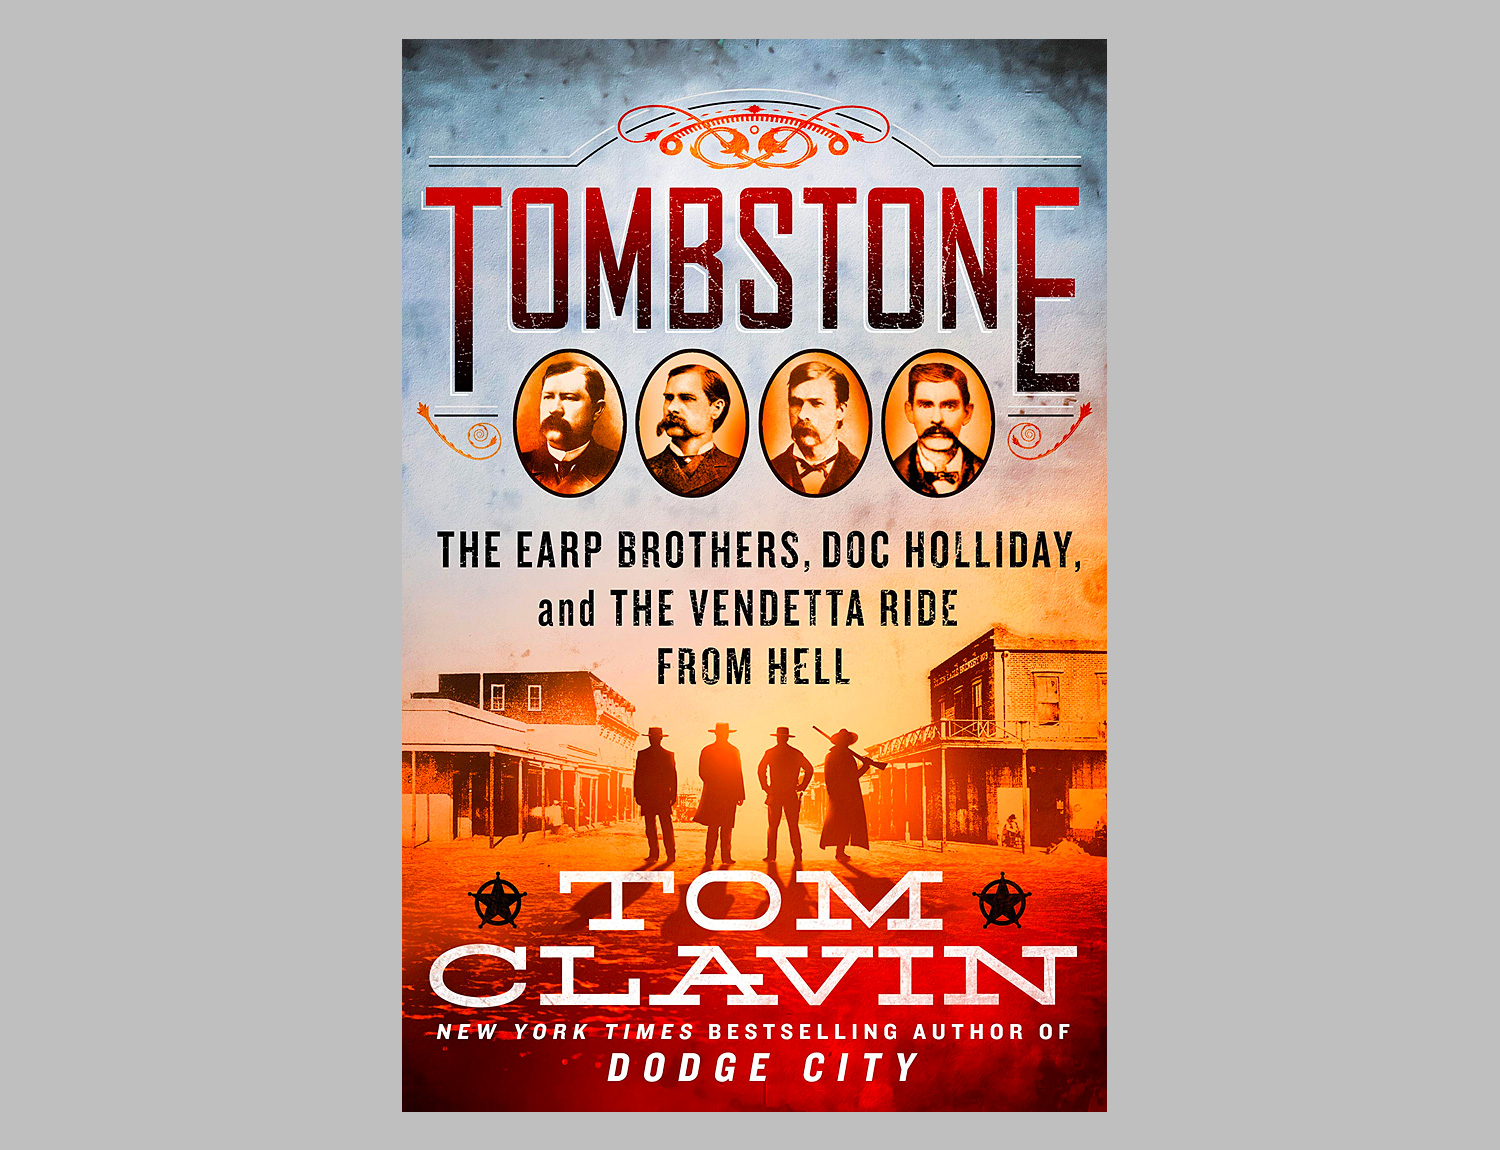 Tombstone: The Earp Brothers, Doc Holliday, and the Vendetta Ride from Hell at werd.com